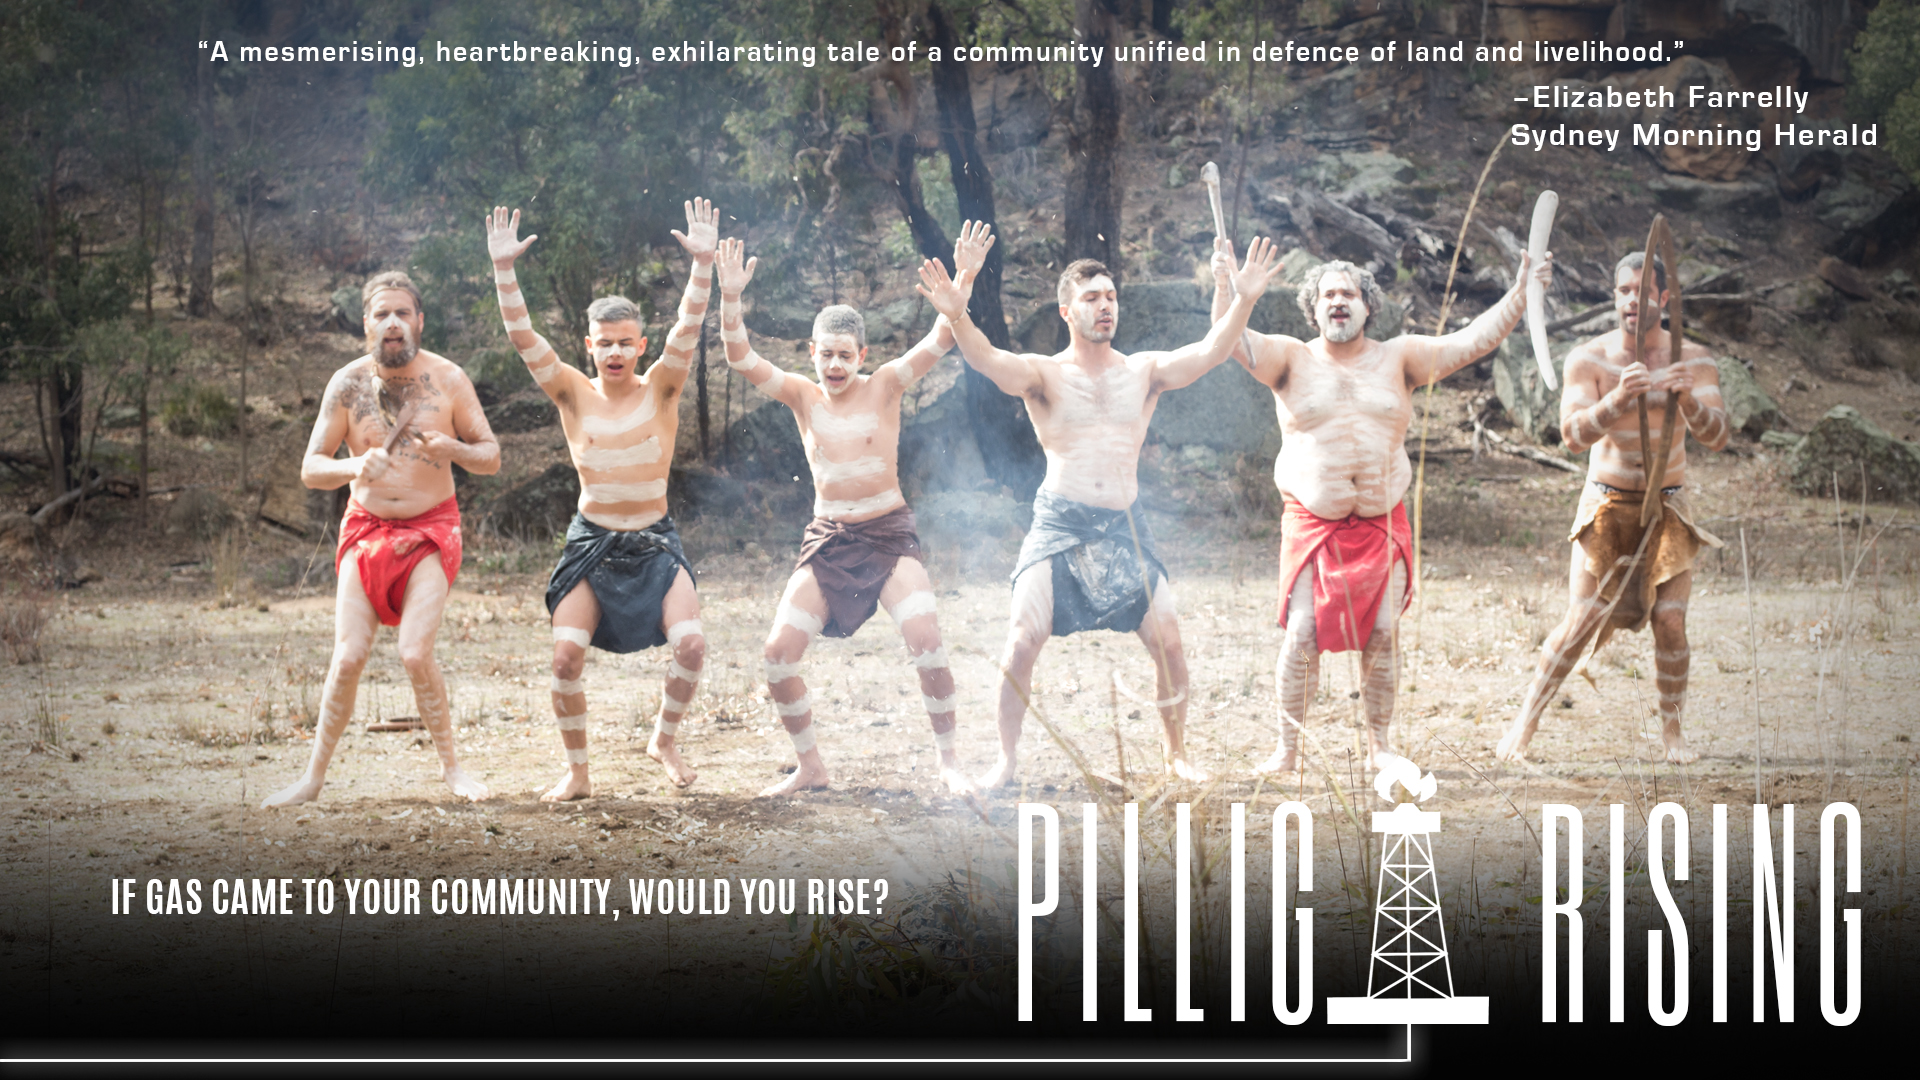 12th July, 2019 PILLIGA RISING DOC TO BE SCREENED IN MOREE A film highlighting the human impacts of Santos' proposed coal seam gas project in the Pilliga Forest will be aired at a free screening in Moree next week.    READ FULL ARTICLE HERE